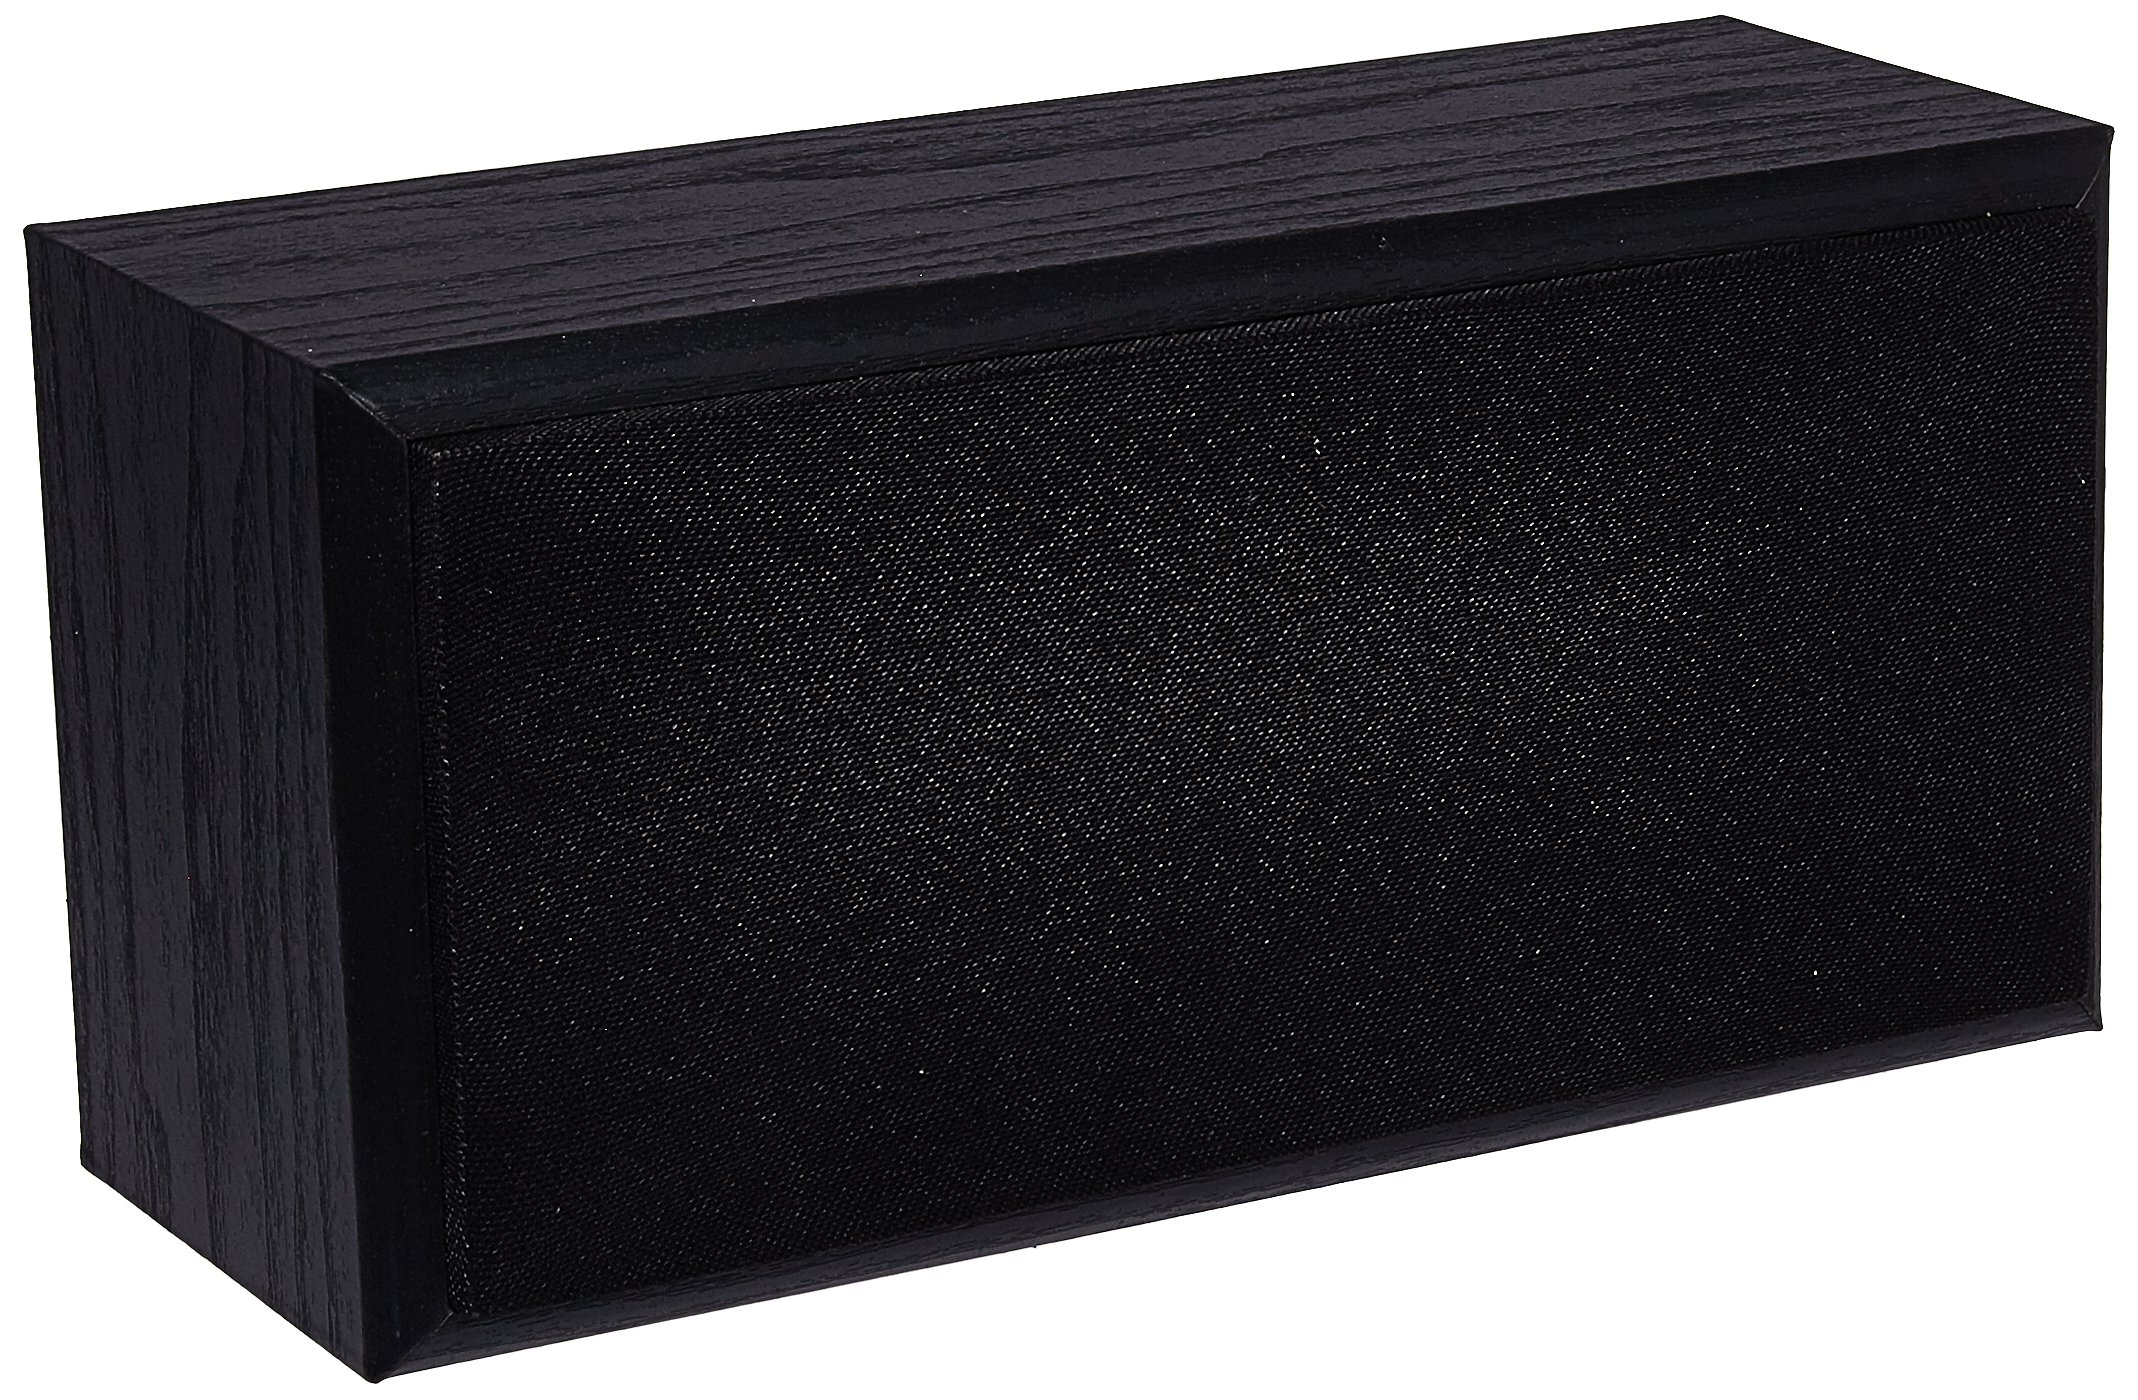 Acoustic Audio RW-C3 Center Channel Speaker (Black) by Acoustic Audio by Goldwood